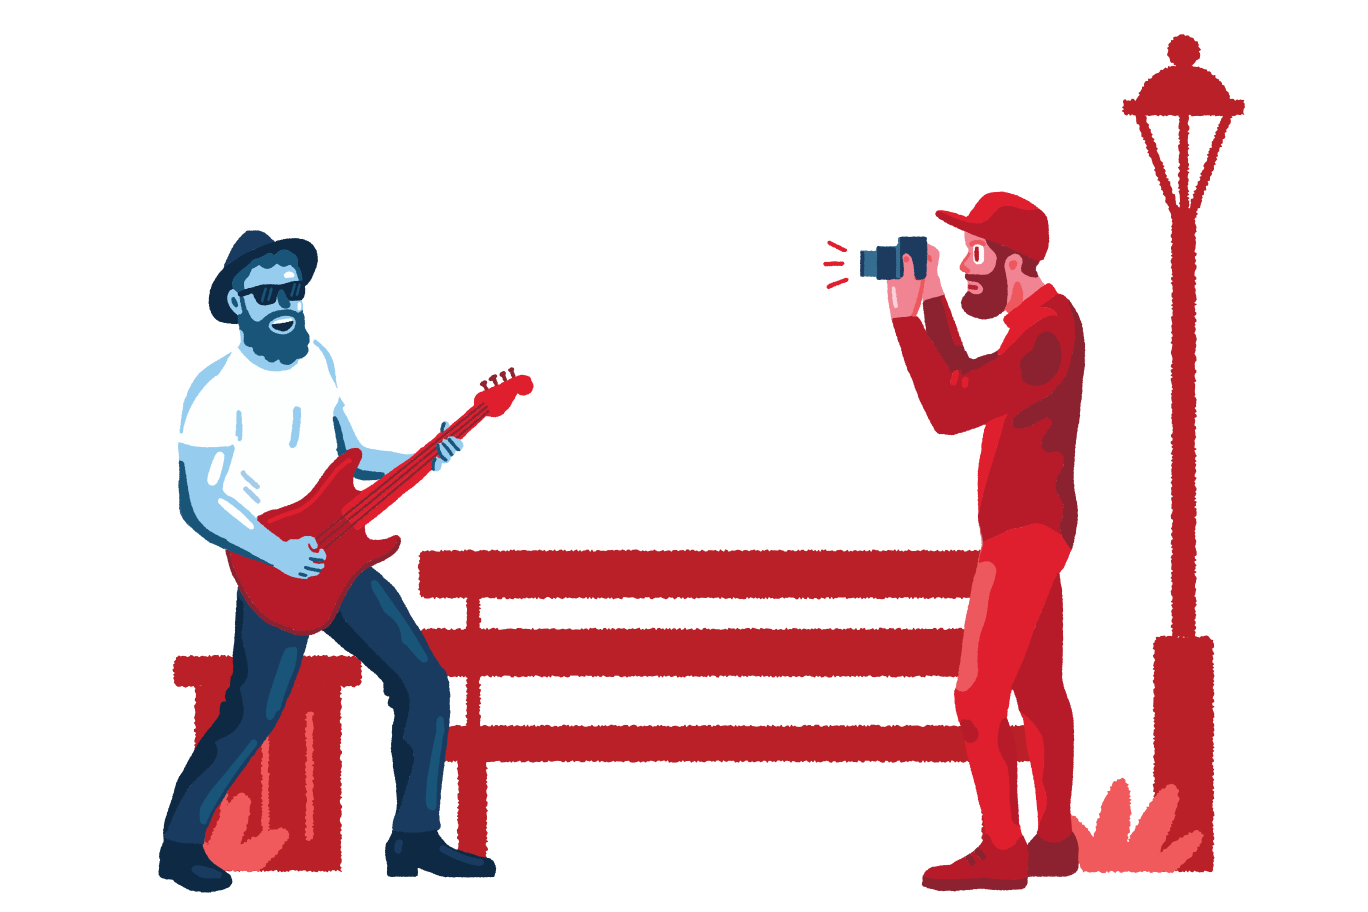 style Shooting street musician Vector images in PNG and SVG   Icons8 Illustrations